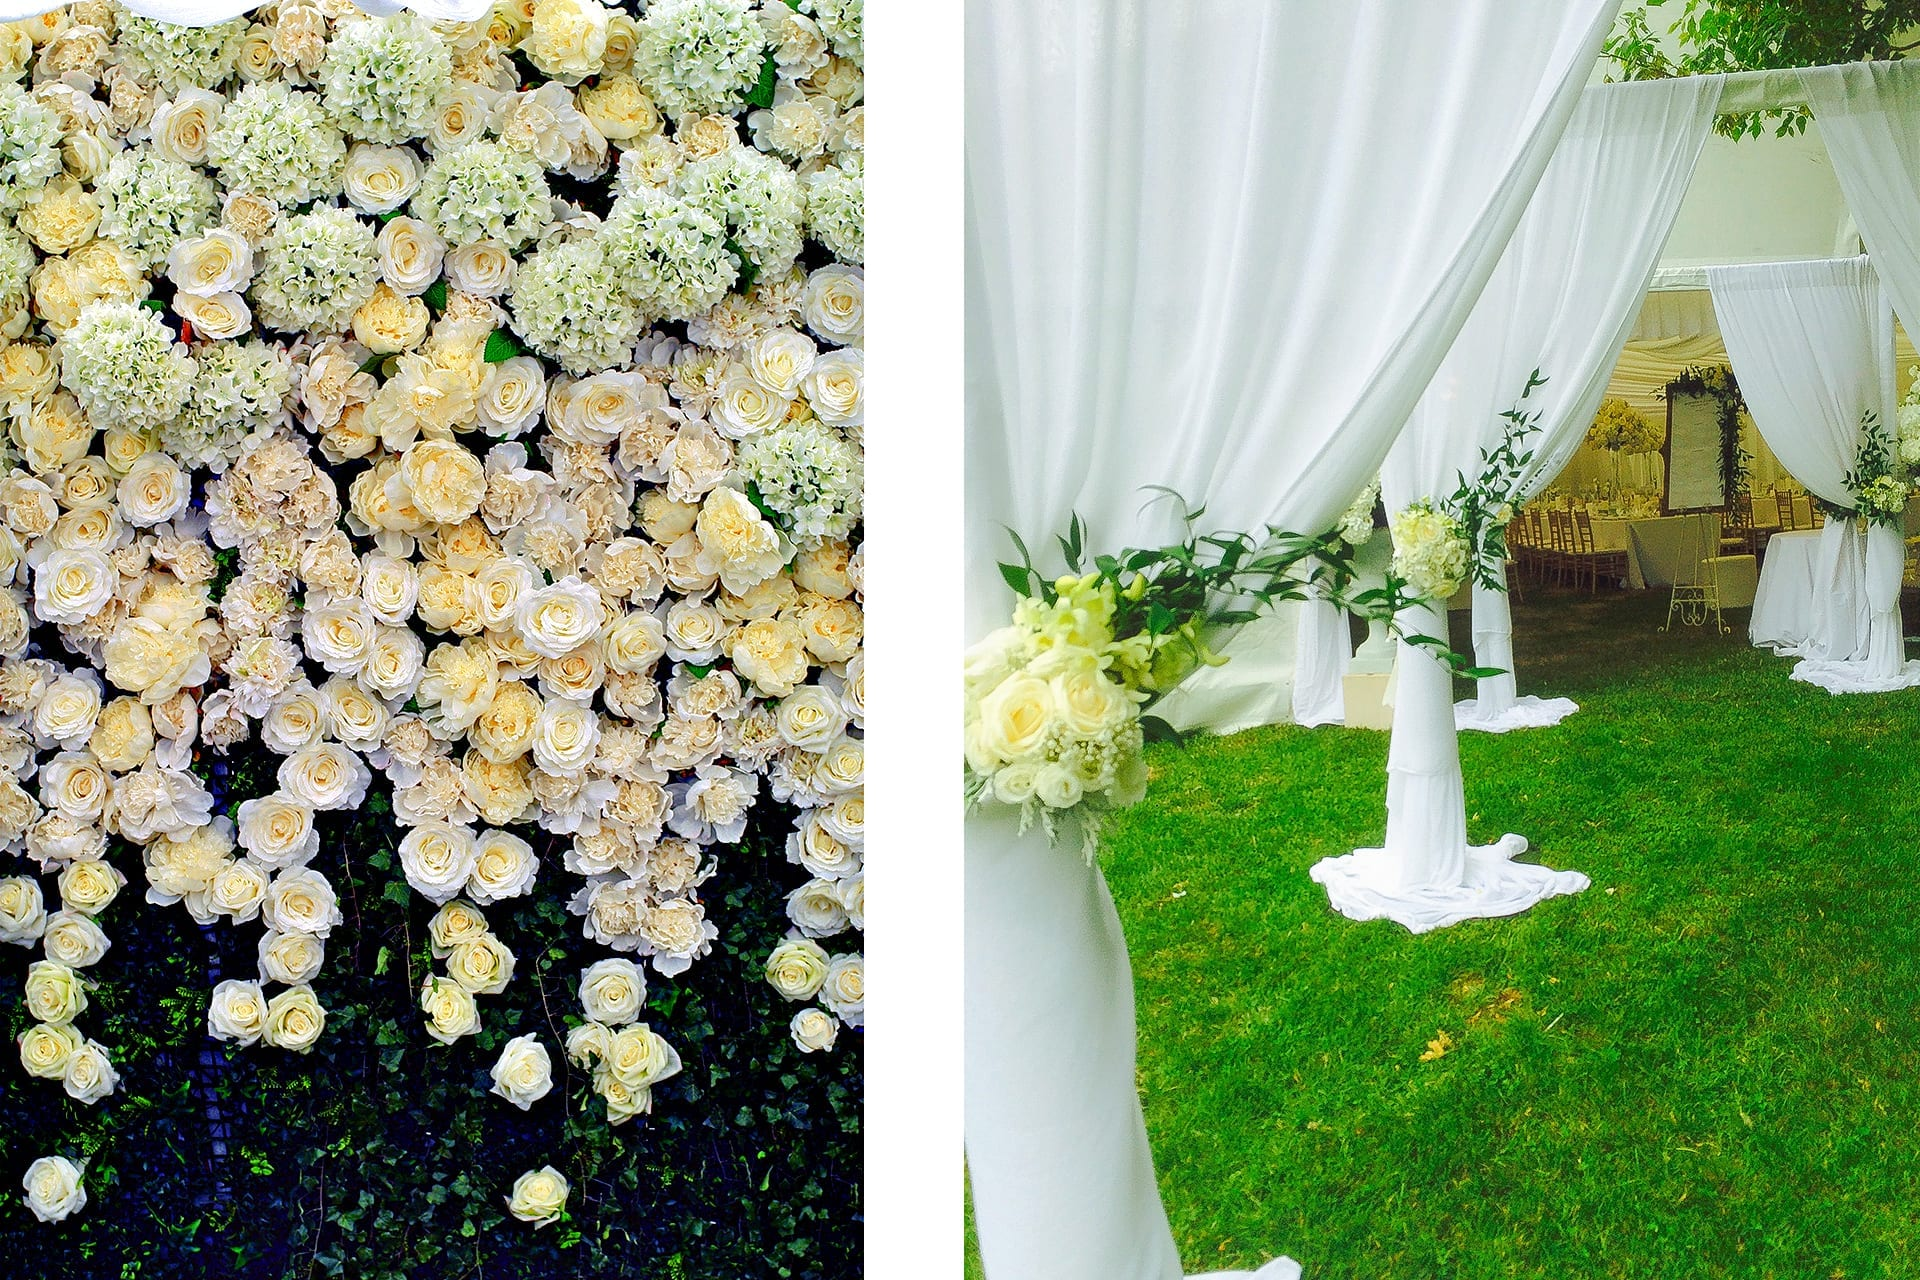 Kim Chan Events |flower wall of roses hydrangeas and peonies all in white,  and fabric drape corridor archway to reception area